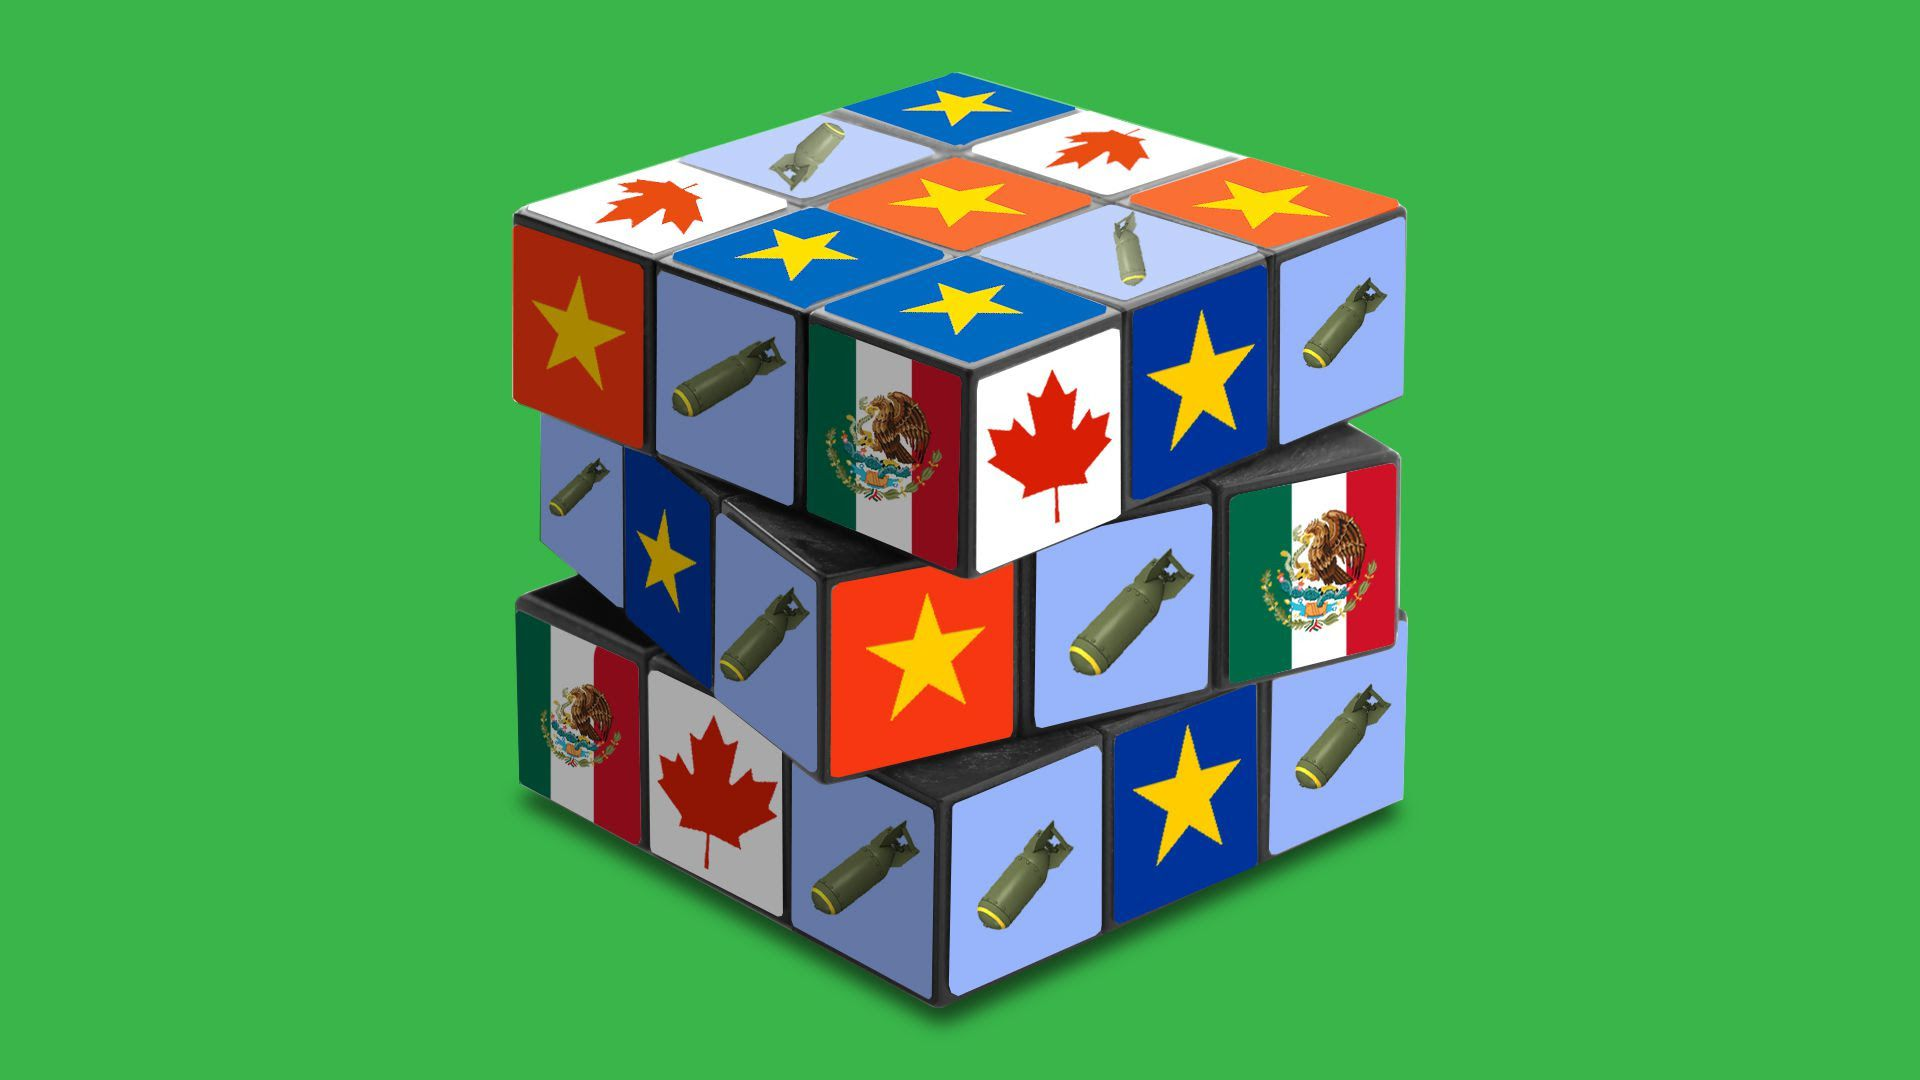 An illustration of a rubik's cube with Canada's and Mexico's flags on the blocks.